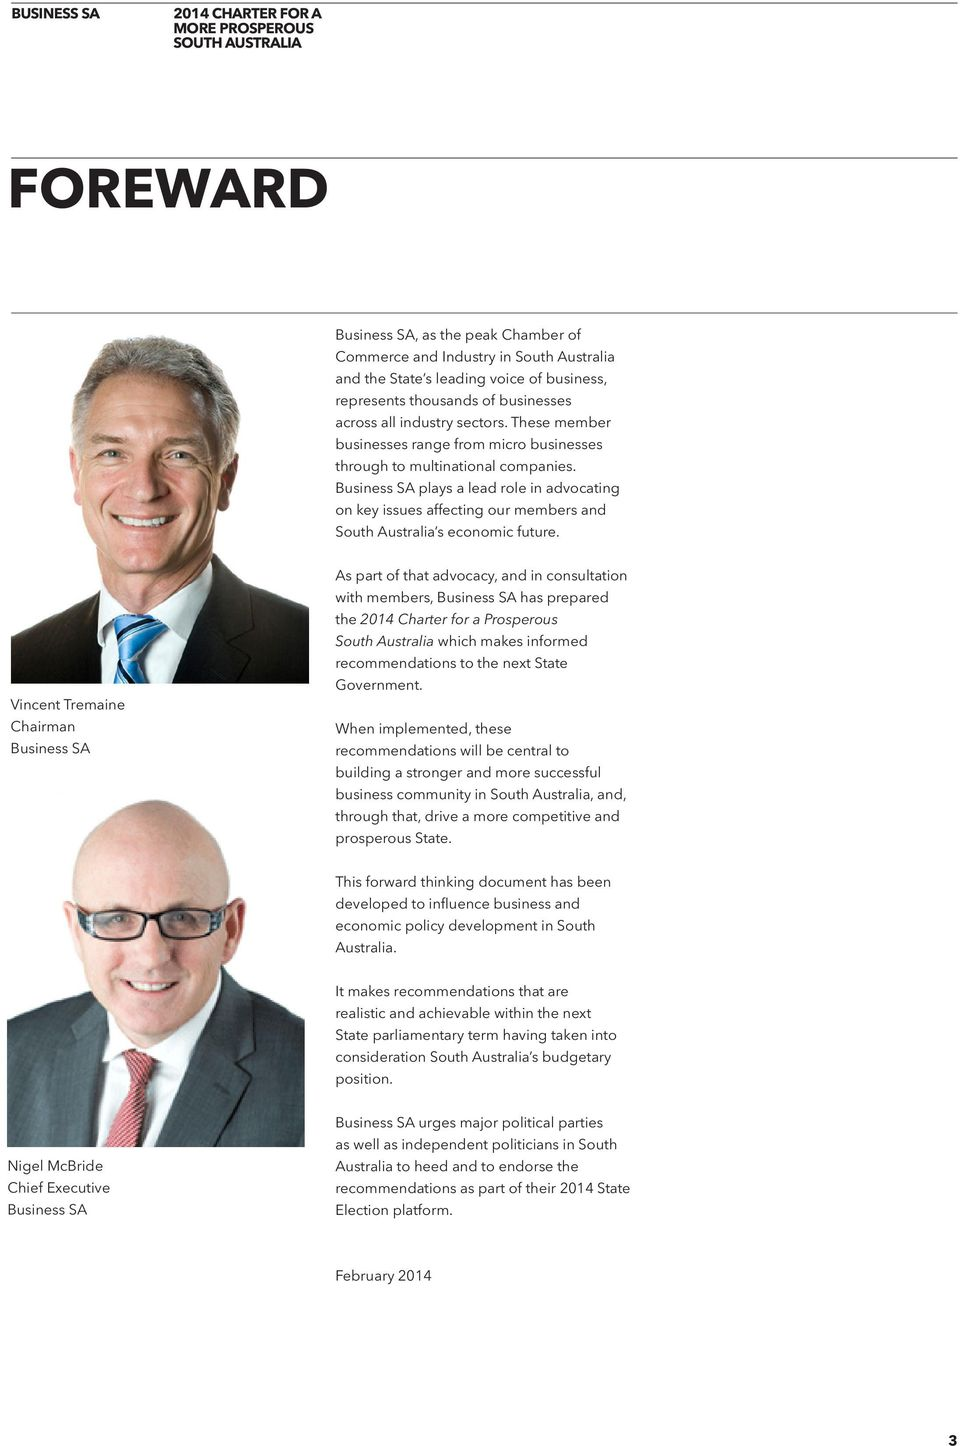 Business SA plays a lead role in advocating on key issues affecting our members and South Australia s economic future.